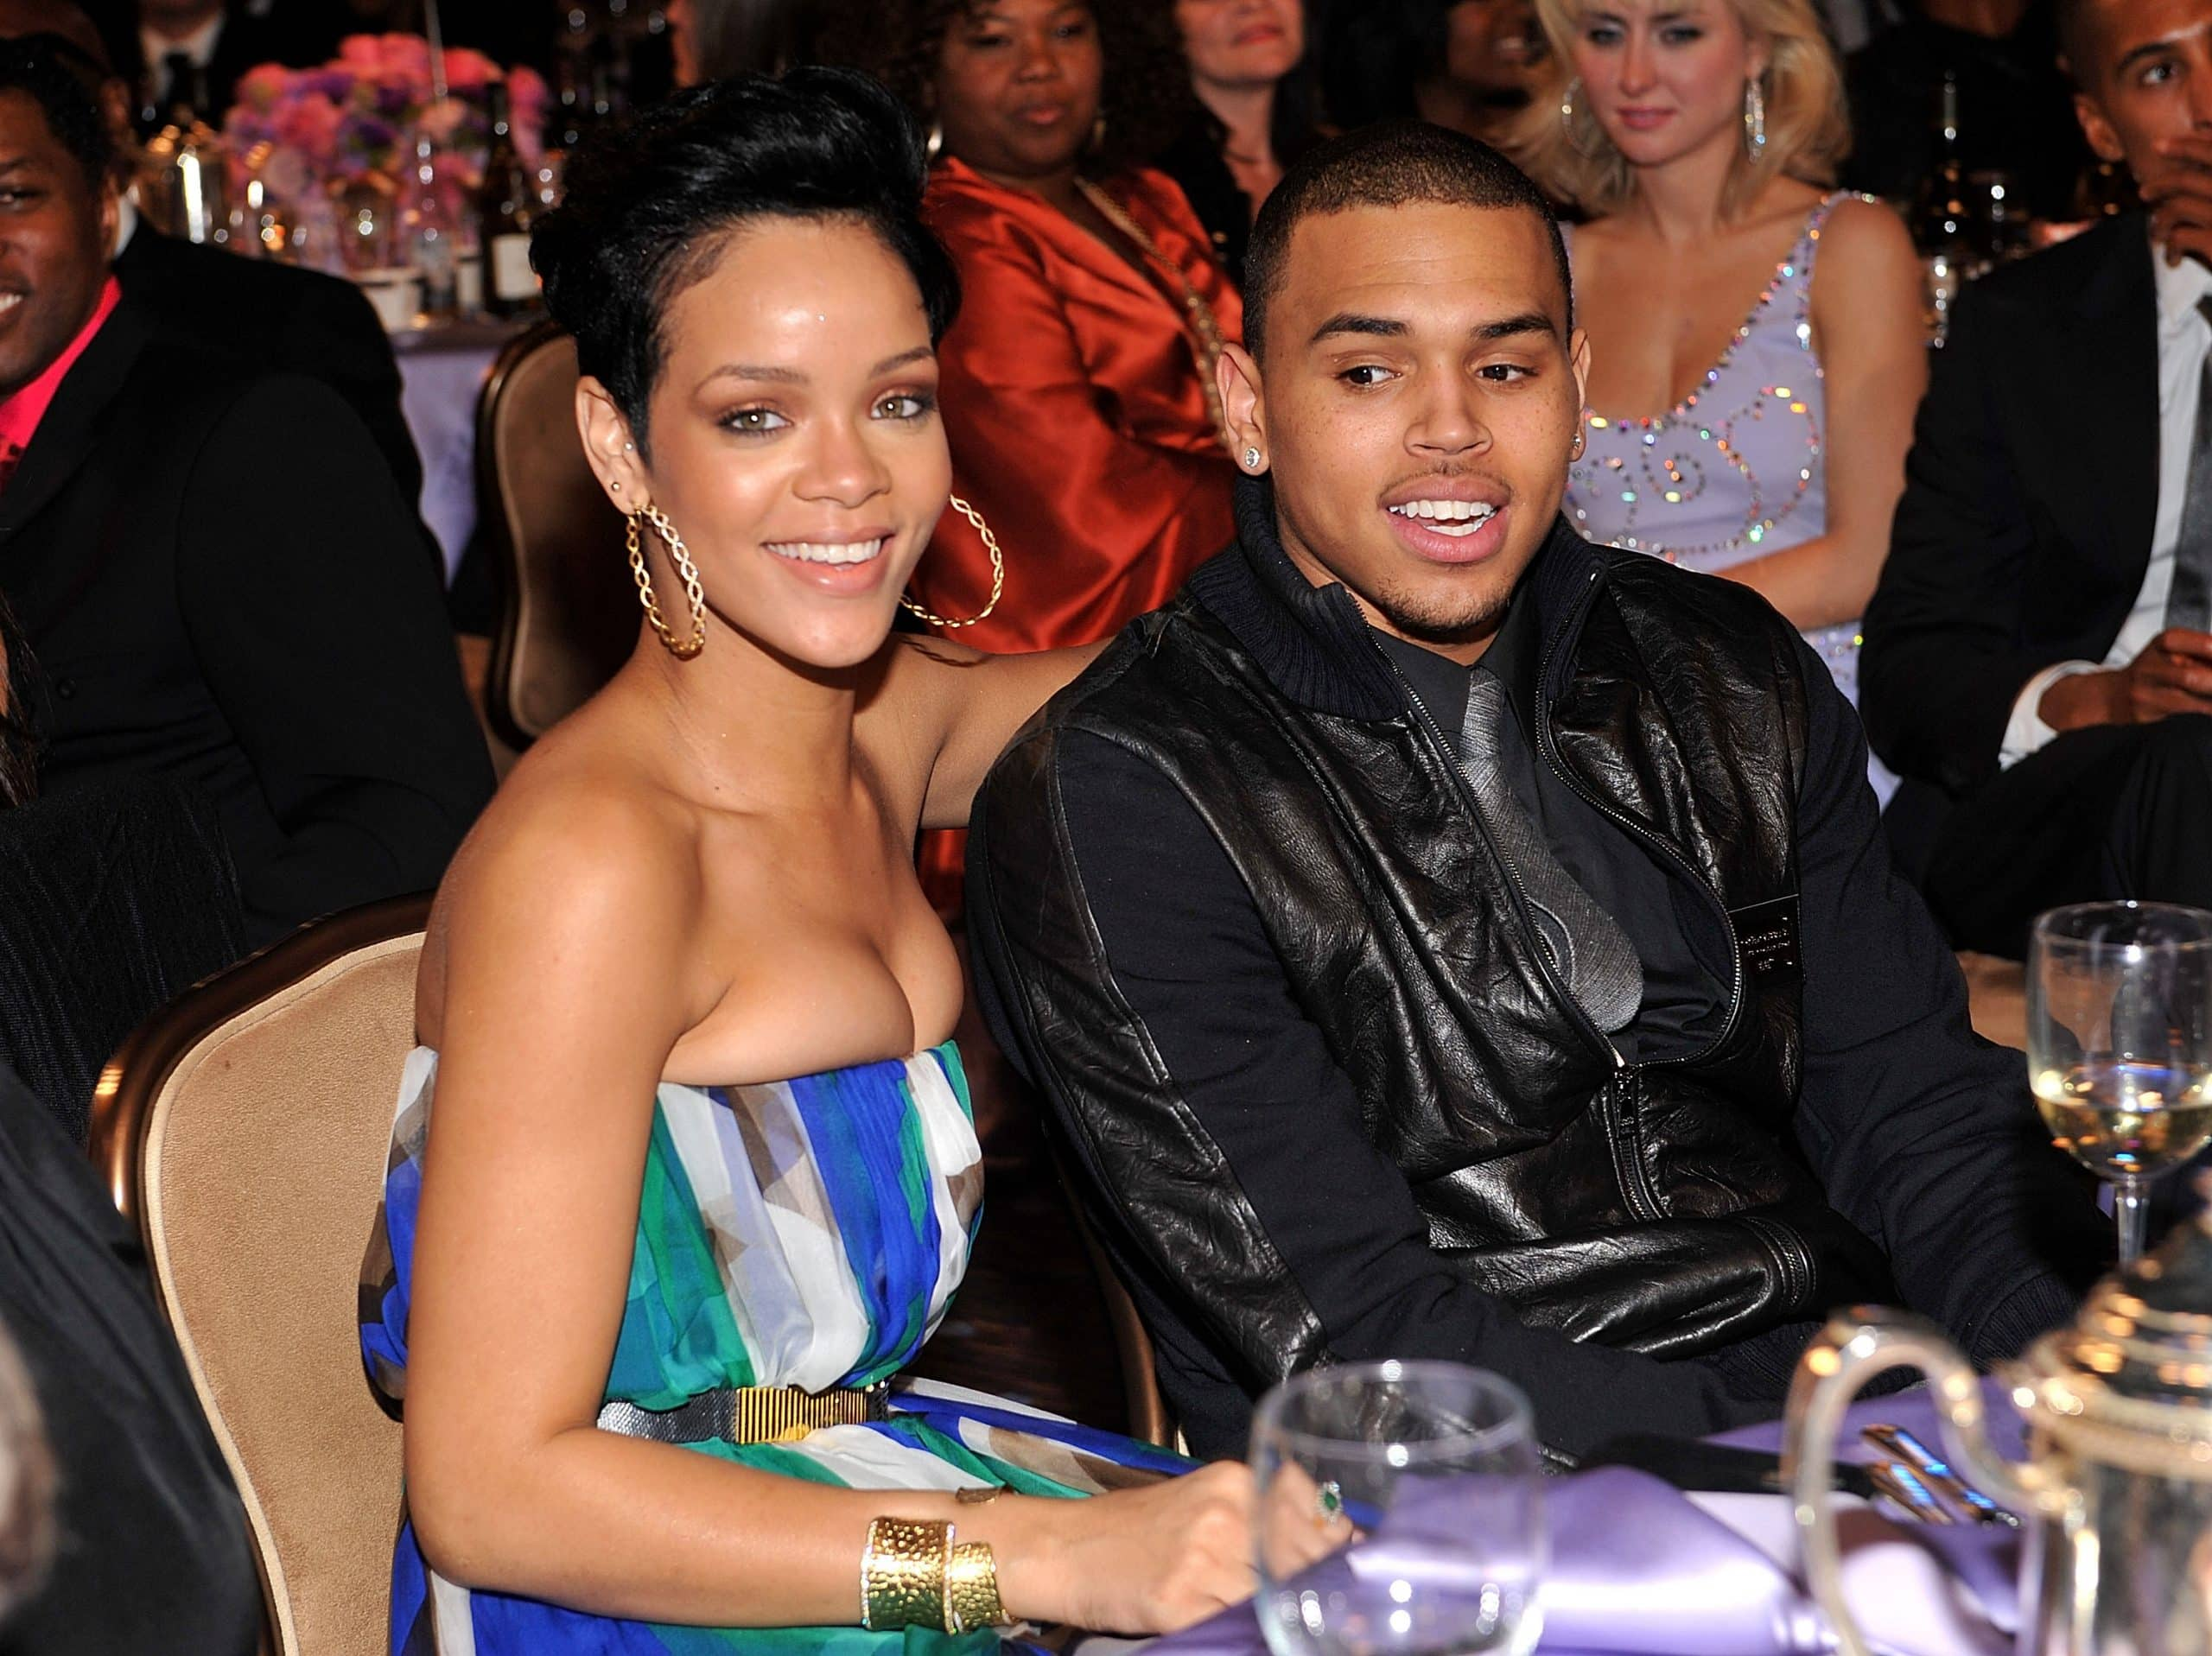 Chris Brown Dating Rihanna Again 2018